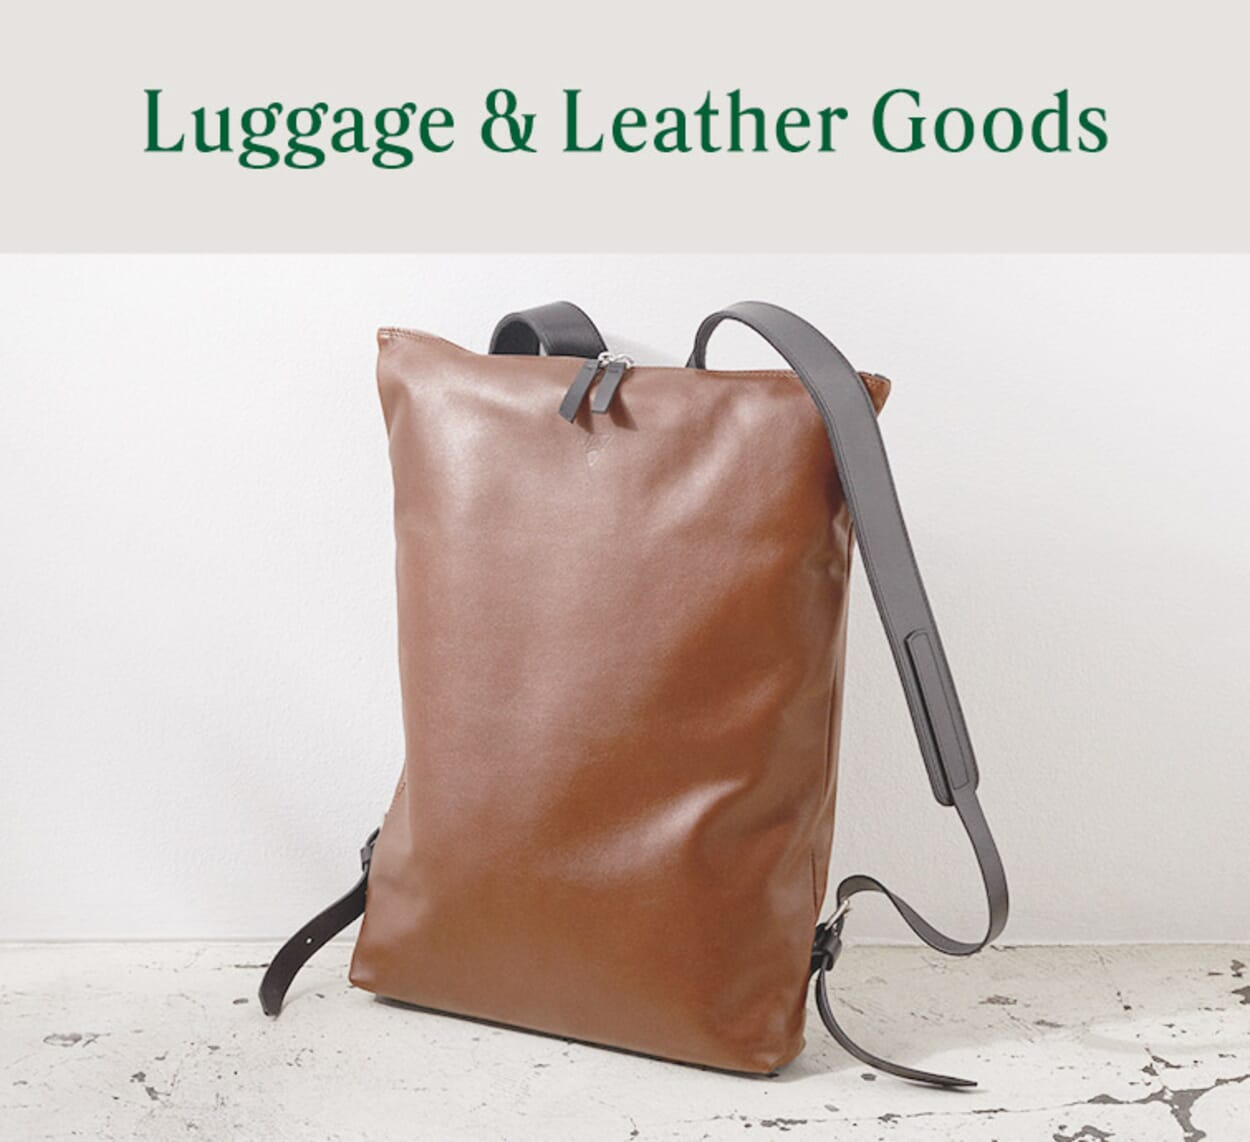 Luggage & Leather Goods